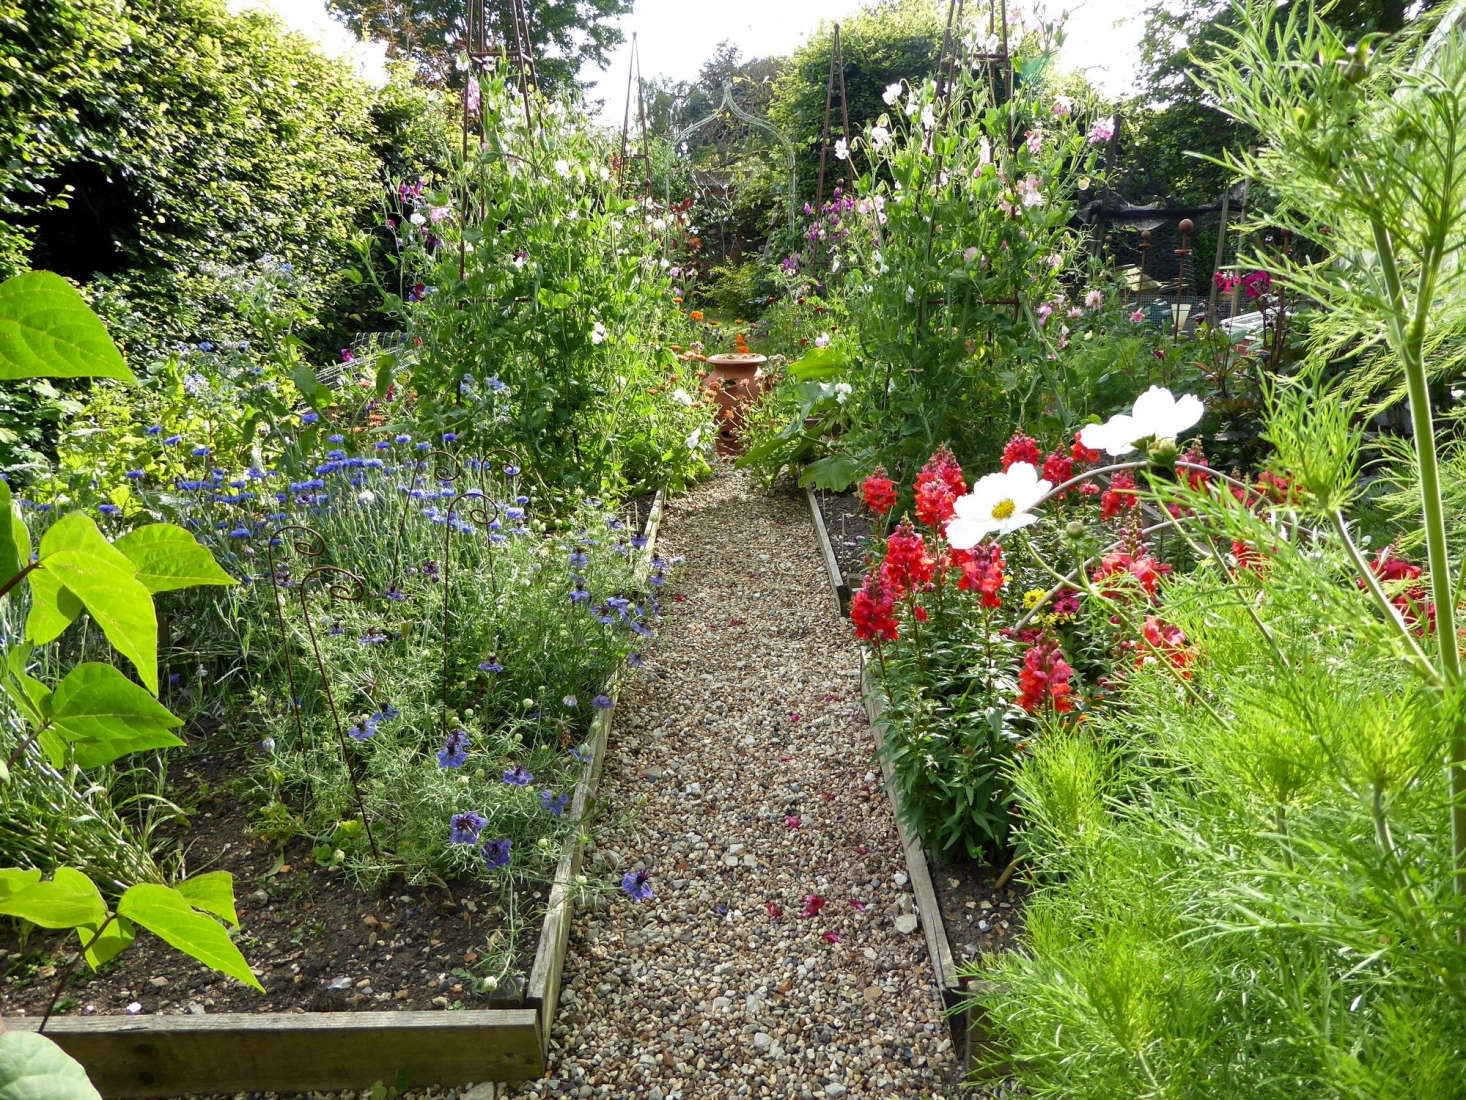 See more of this companionable plot in Behind the Hedges: Catherine Horwood's Hidden Kitchen Garden. Photograph by Clare Coulson.